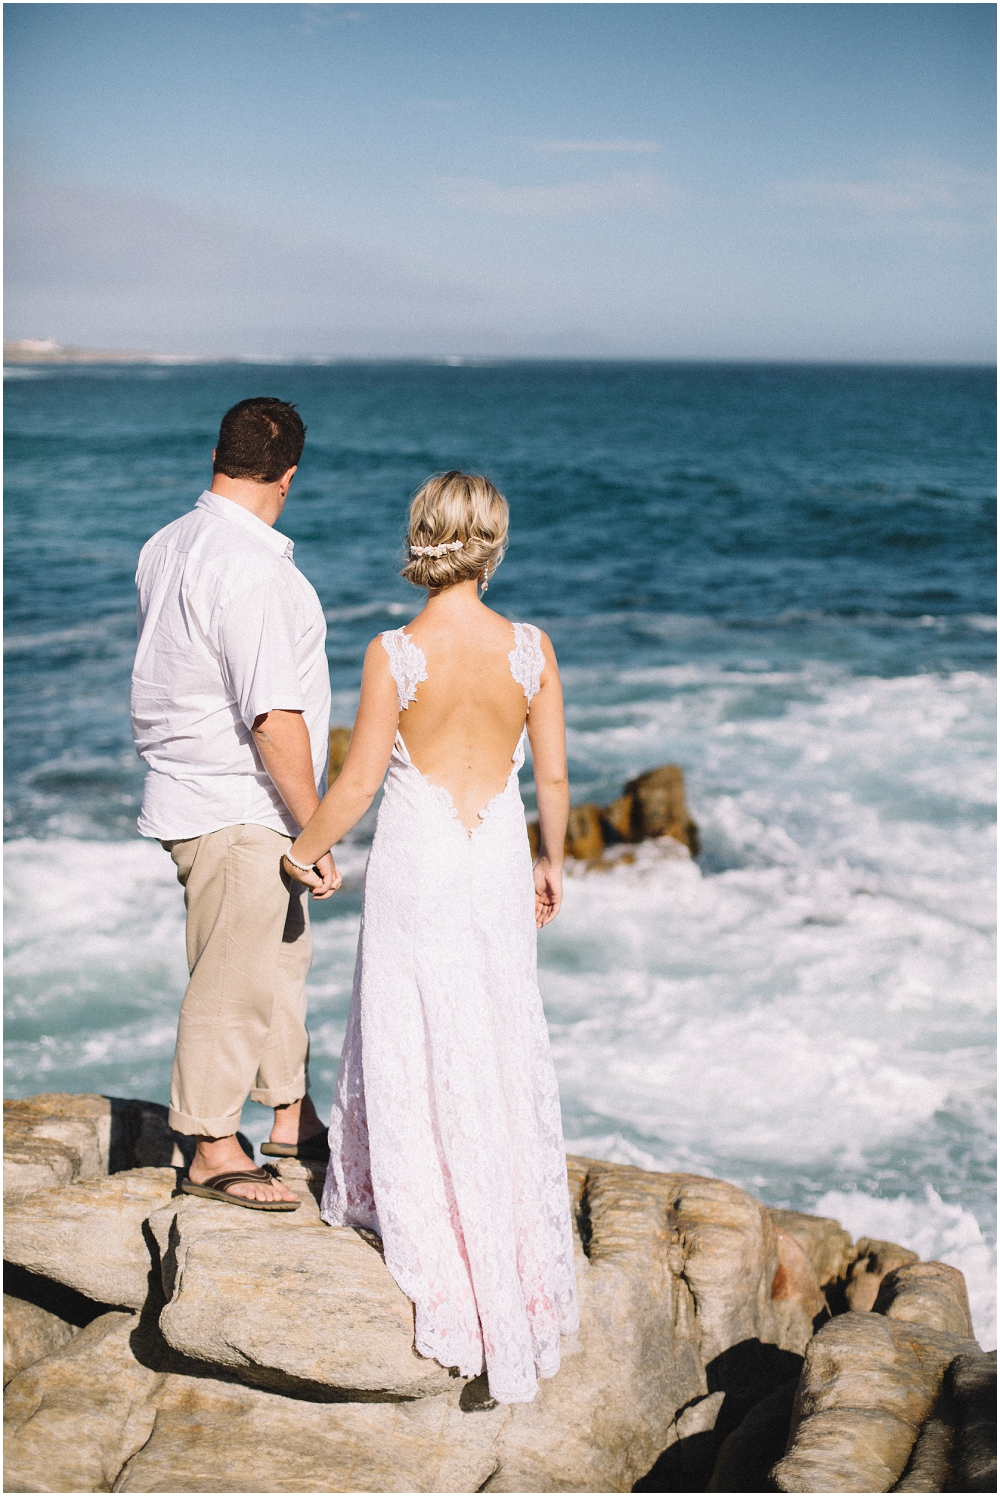 Western Cape Wedding Photographer Ronel Kruger Photography Cape Town_4025.jpg